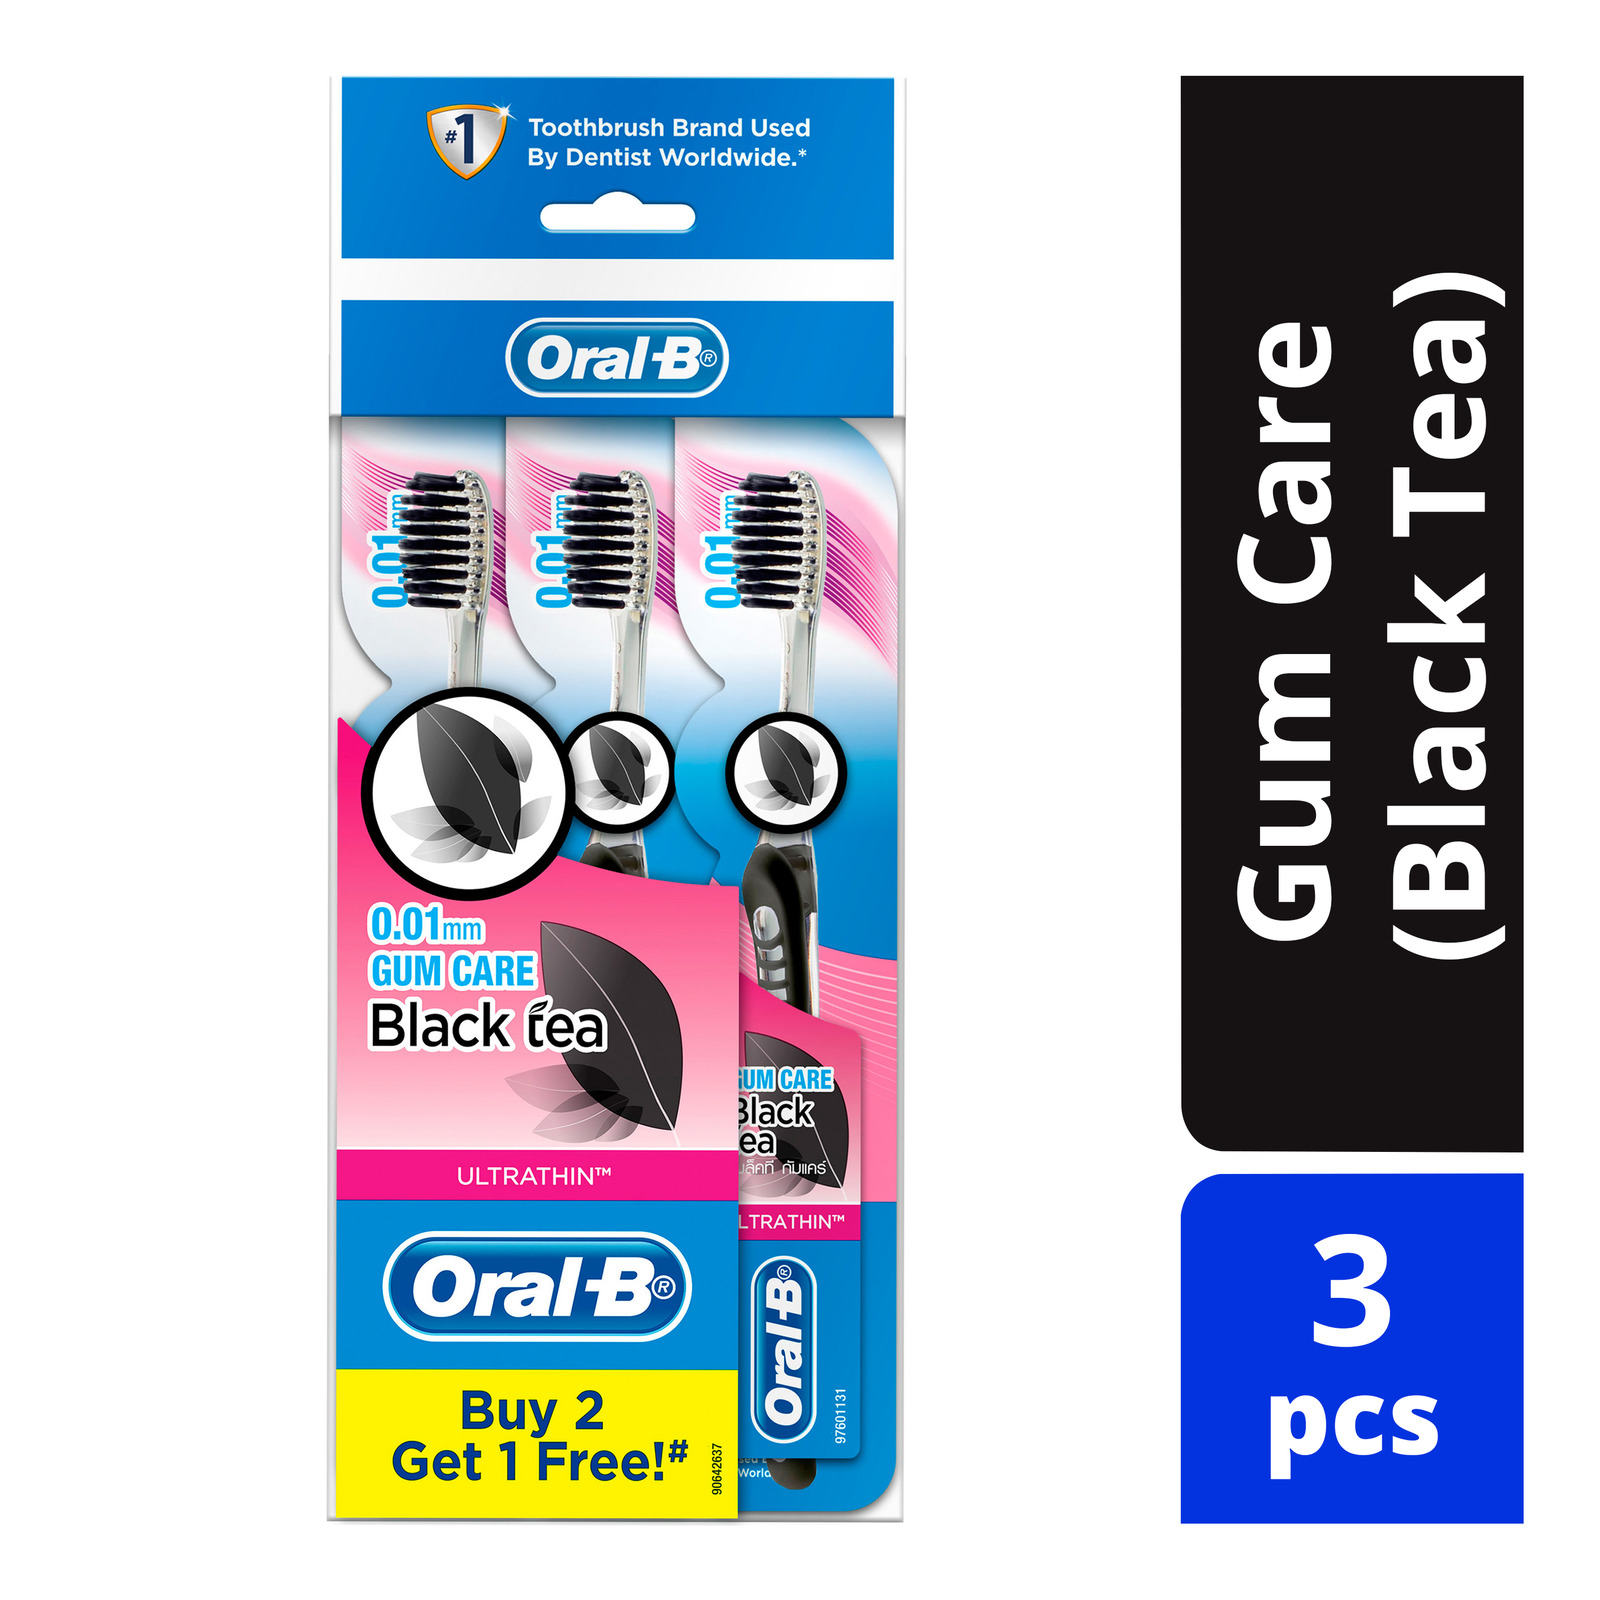 ORAL B ultrathin pro gum care extra soft manual toothbrush 3 count